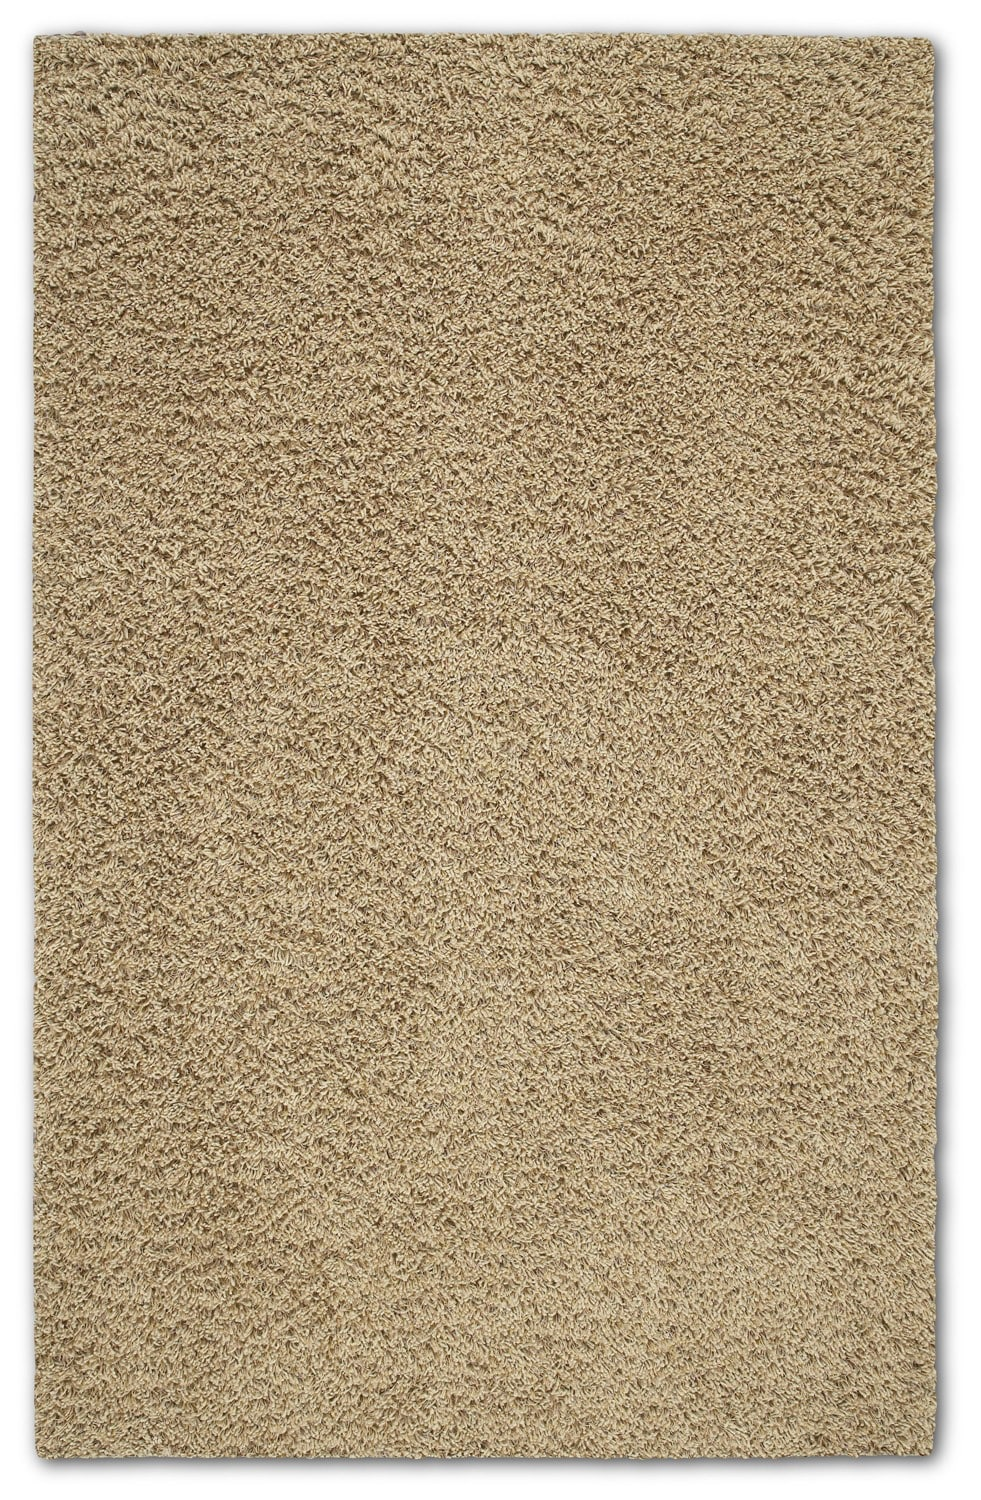 Shop Shaw Living 5' x 8' Ivory Shaggedy Shag Area Rug at review